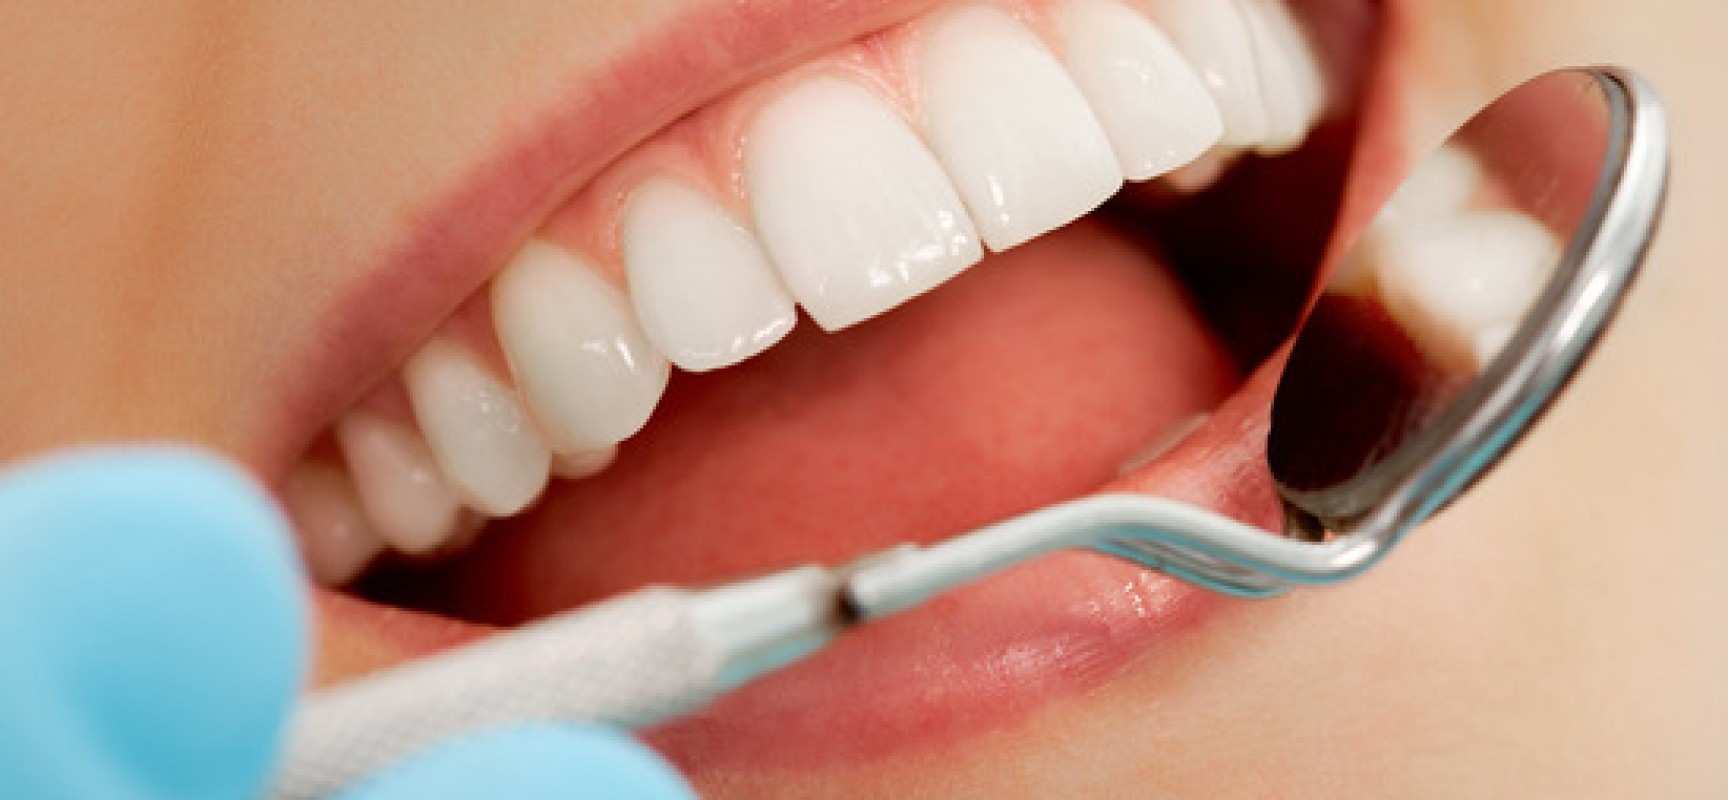 Dental Implants: Do They Hurt?